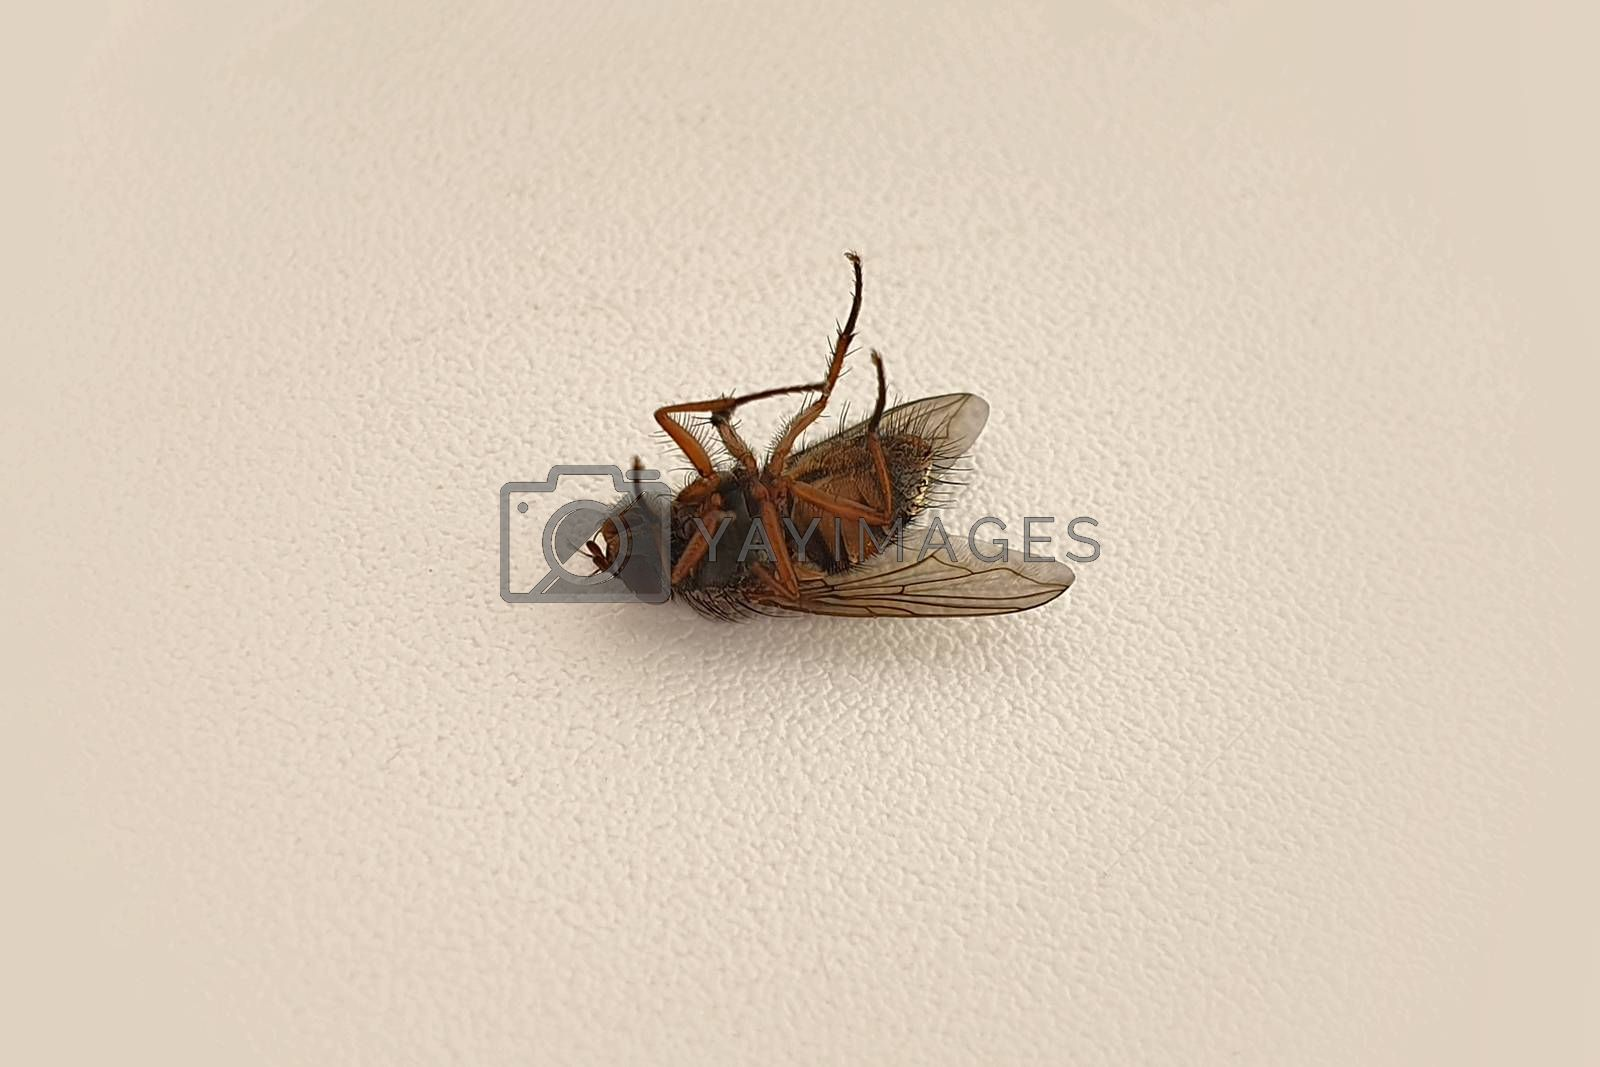 Dead fly lying on his back. Dead insect